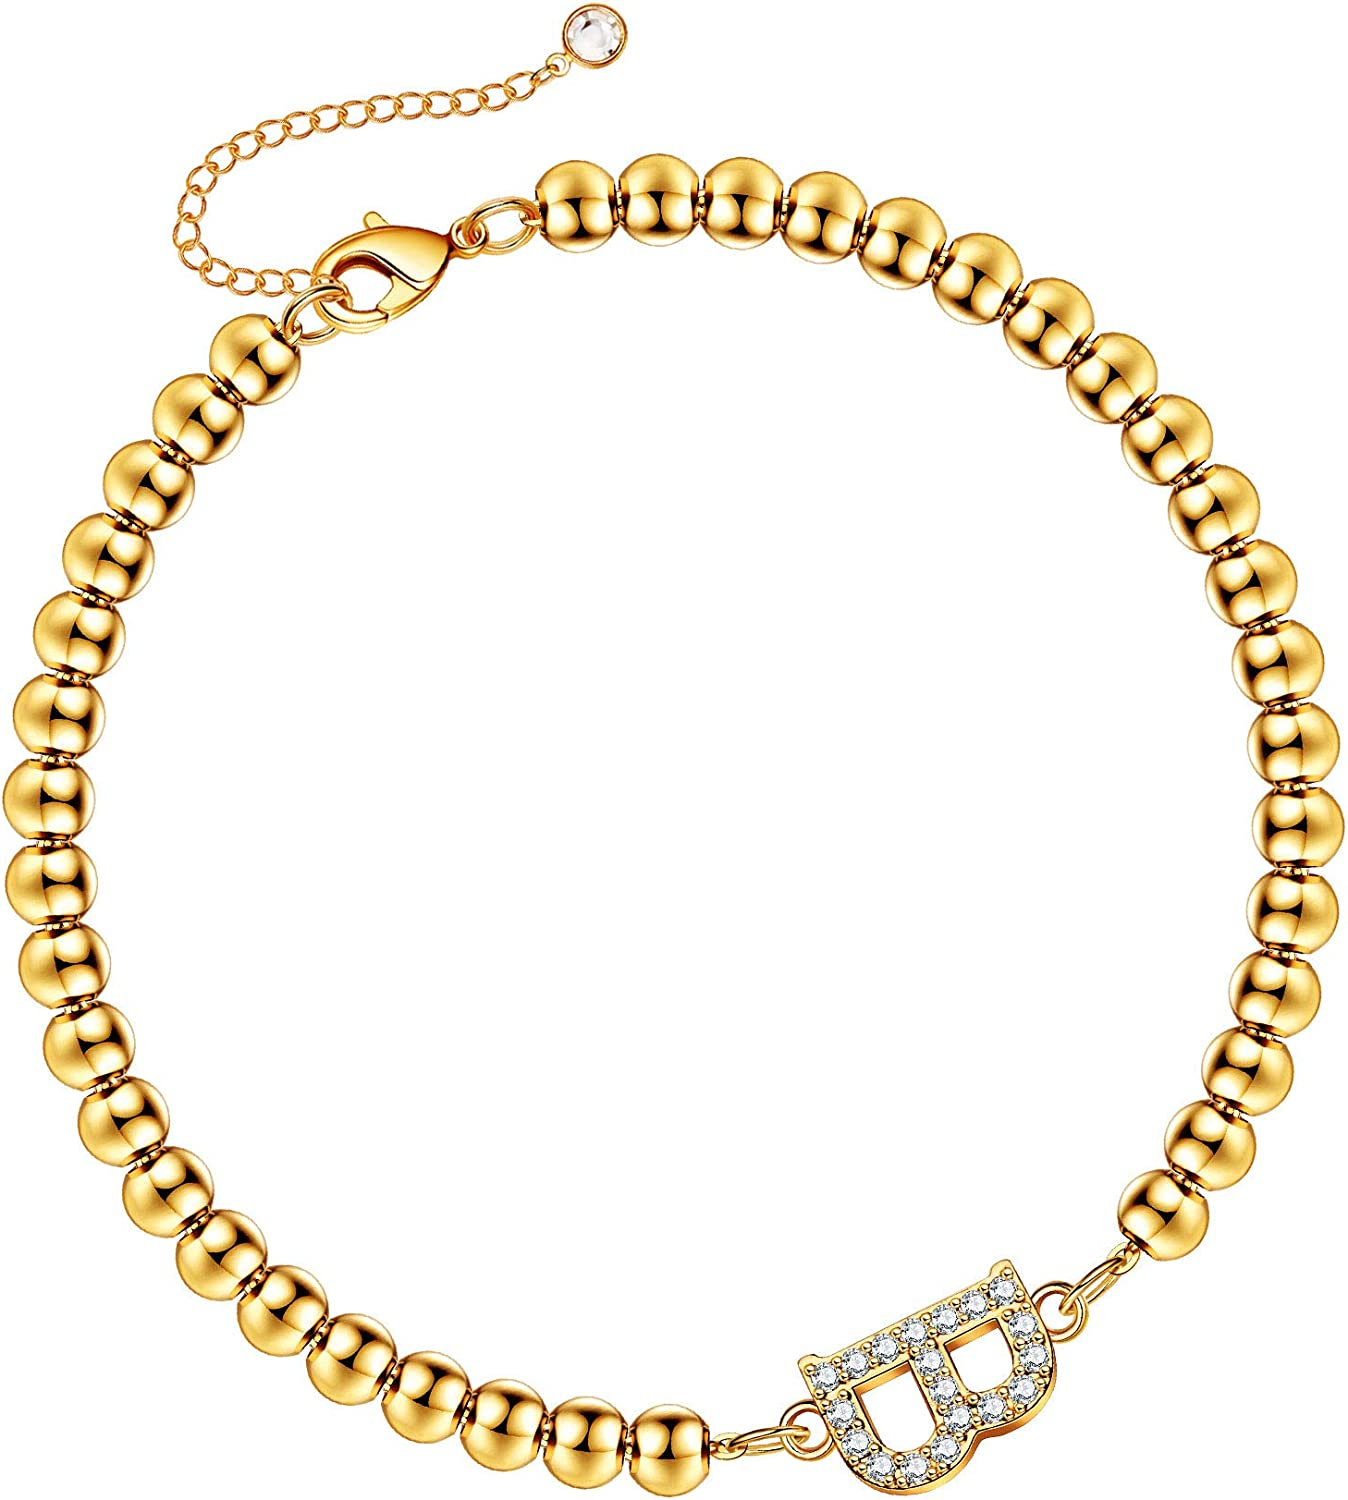 Hidepoo Gold Initial Bracelets for Women Girls, 14K Gold Plated Dainty Cubic Zirconia Bead Initial Bracelets Personalized Letter Beaded Initial Gold Bracelets for Women Girls Jewelry Gifts